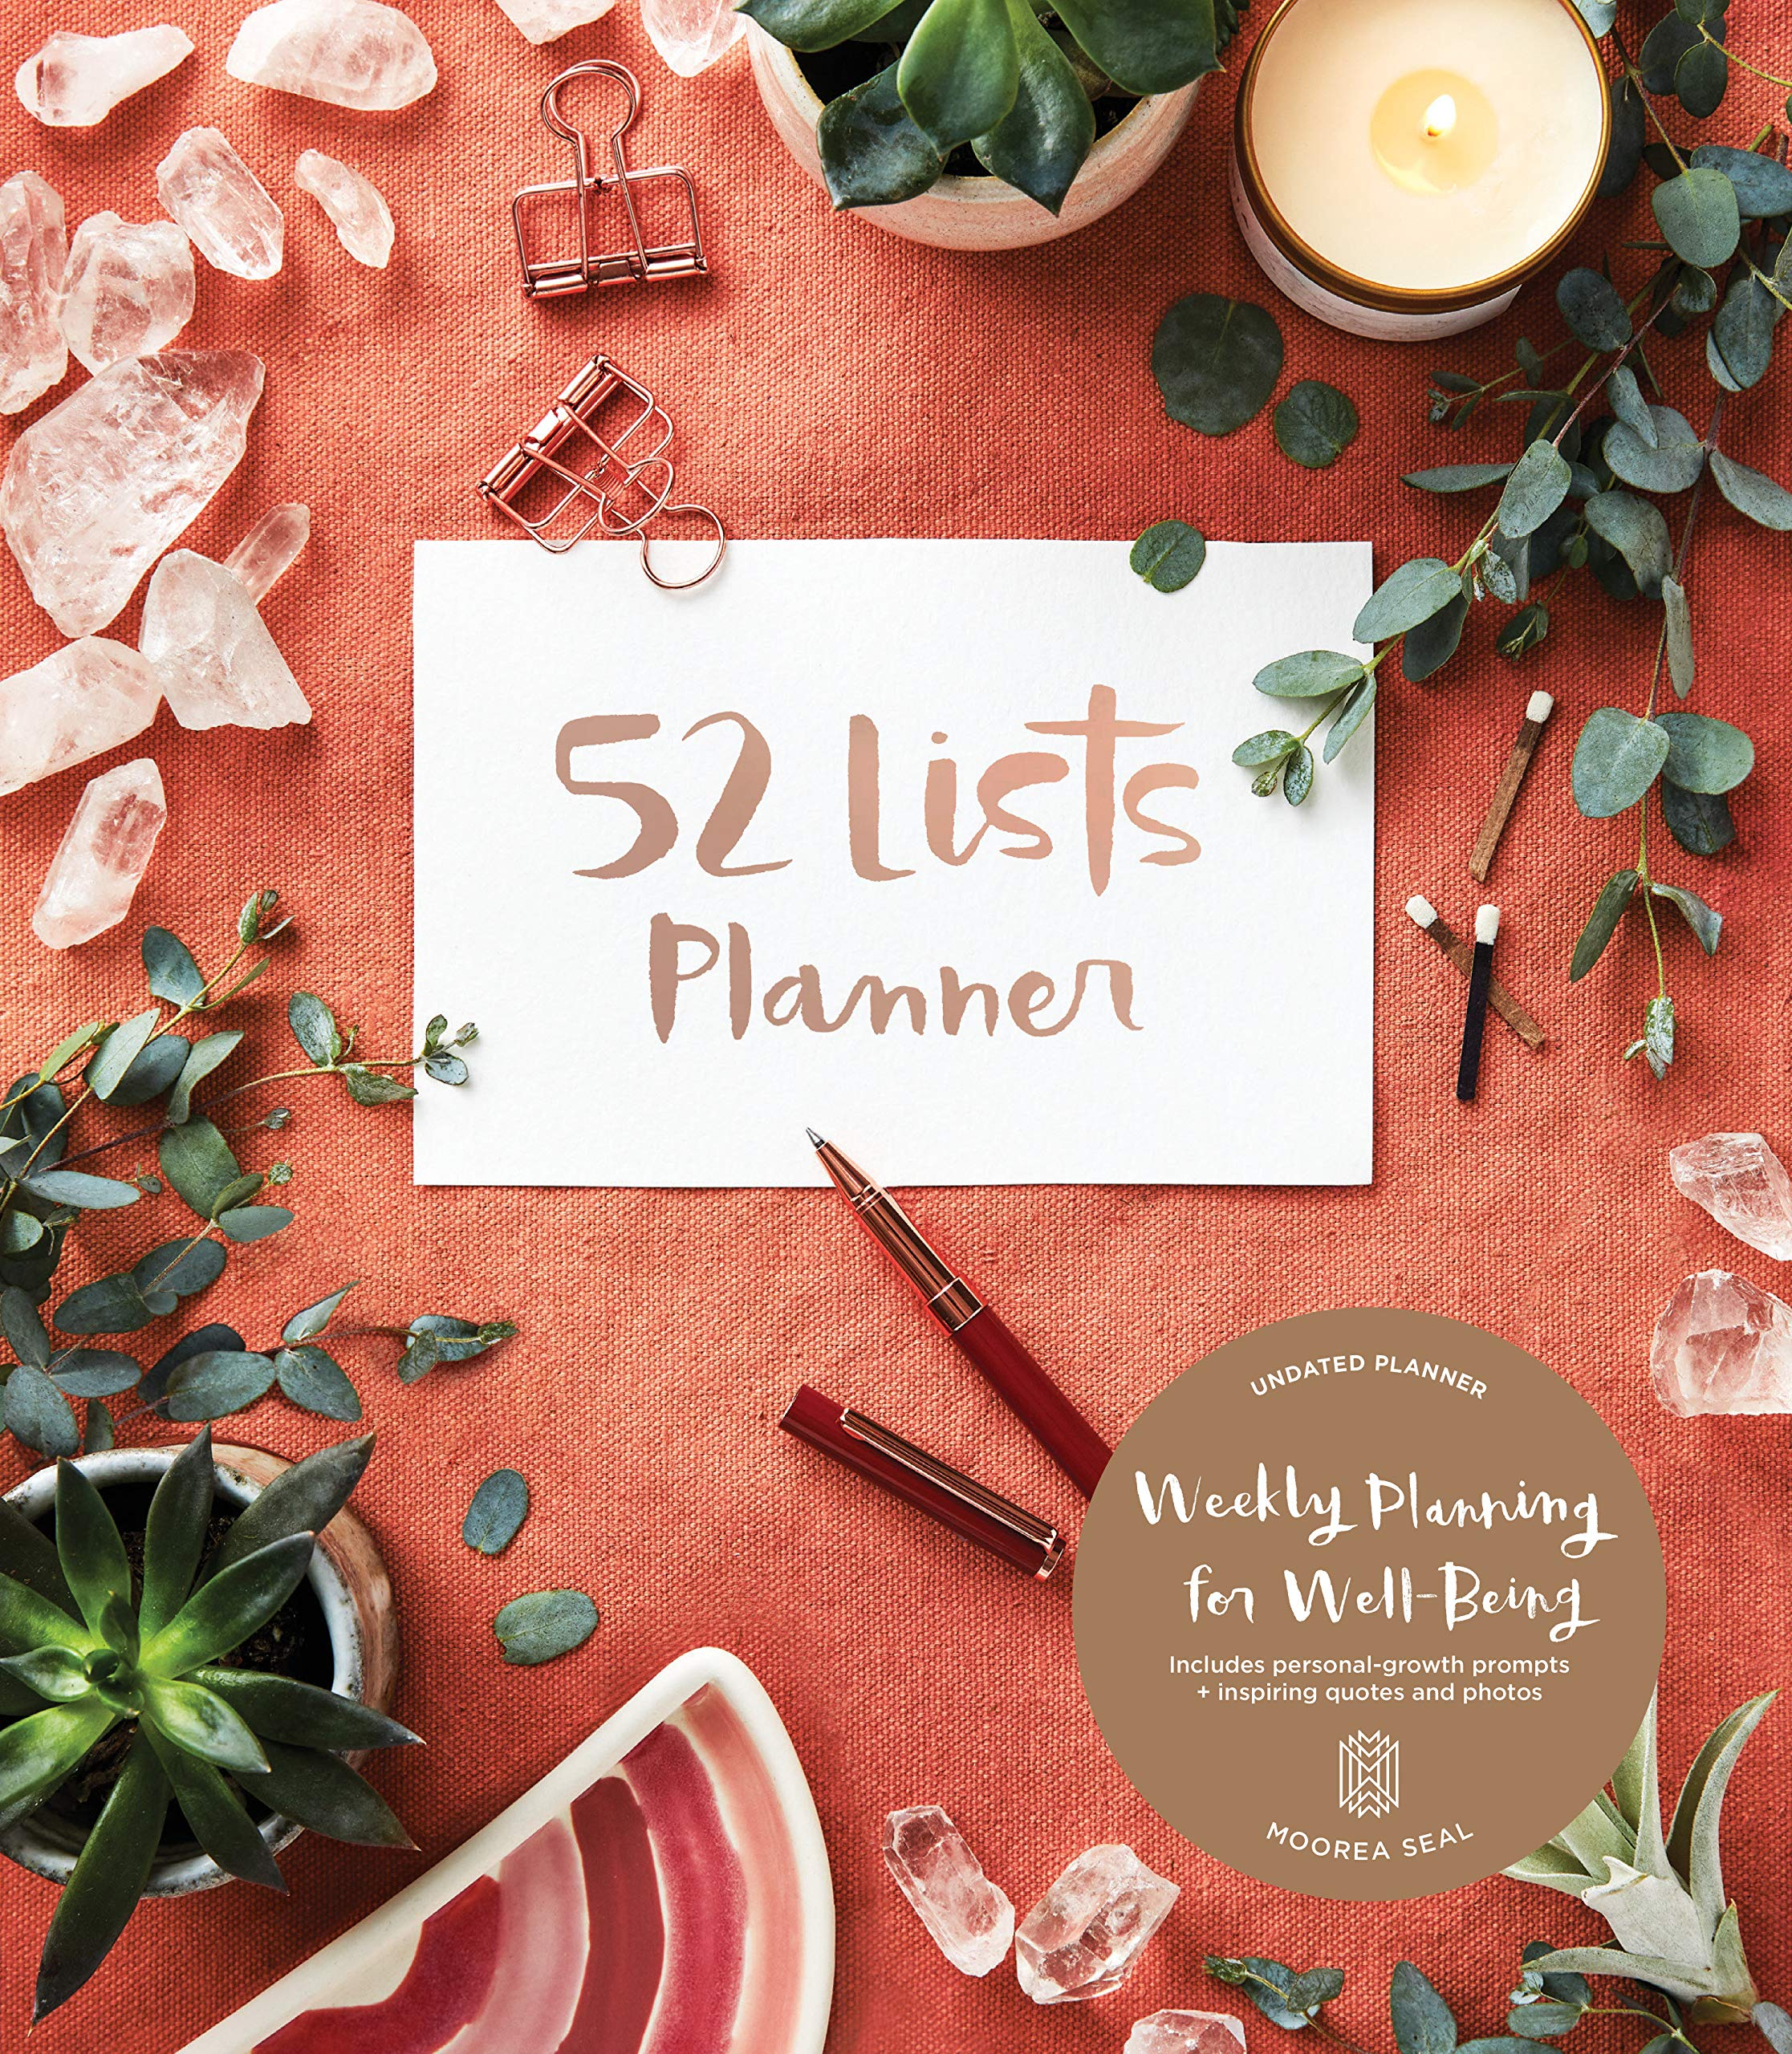 52 Lists Planner (Coral Crystal) Undated Monthly/Weekly Planner with Prompts for Well-Being, Reflection, Personal Growth…